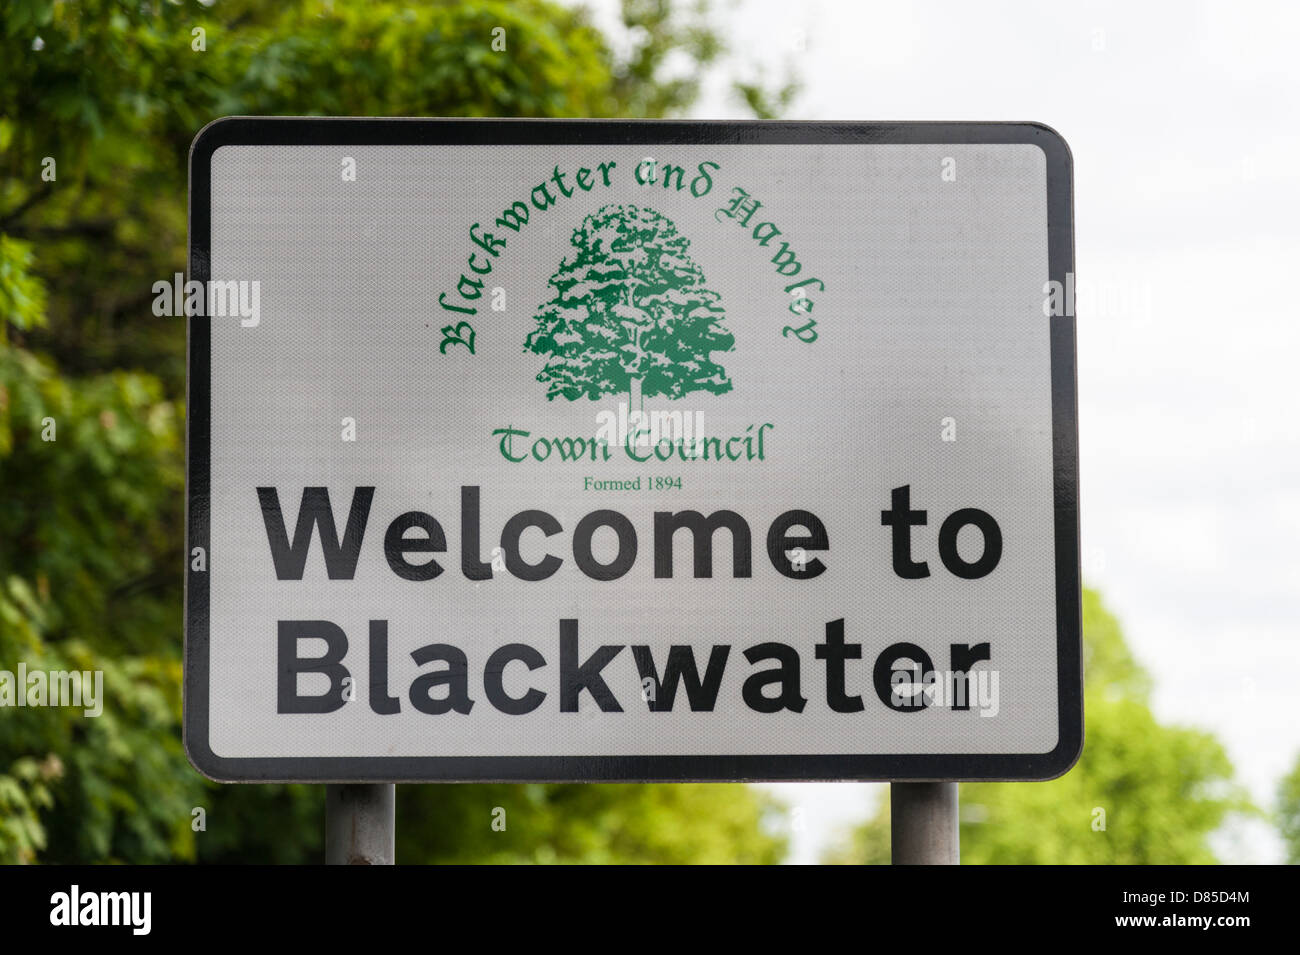 Welcome to Blackwater Berkshire UK town council sign - Stock Image